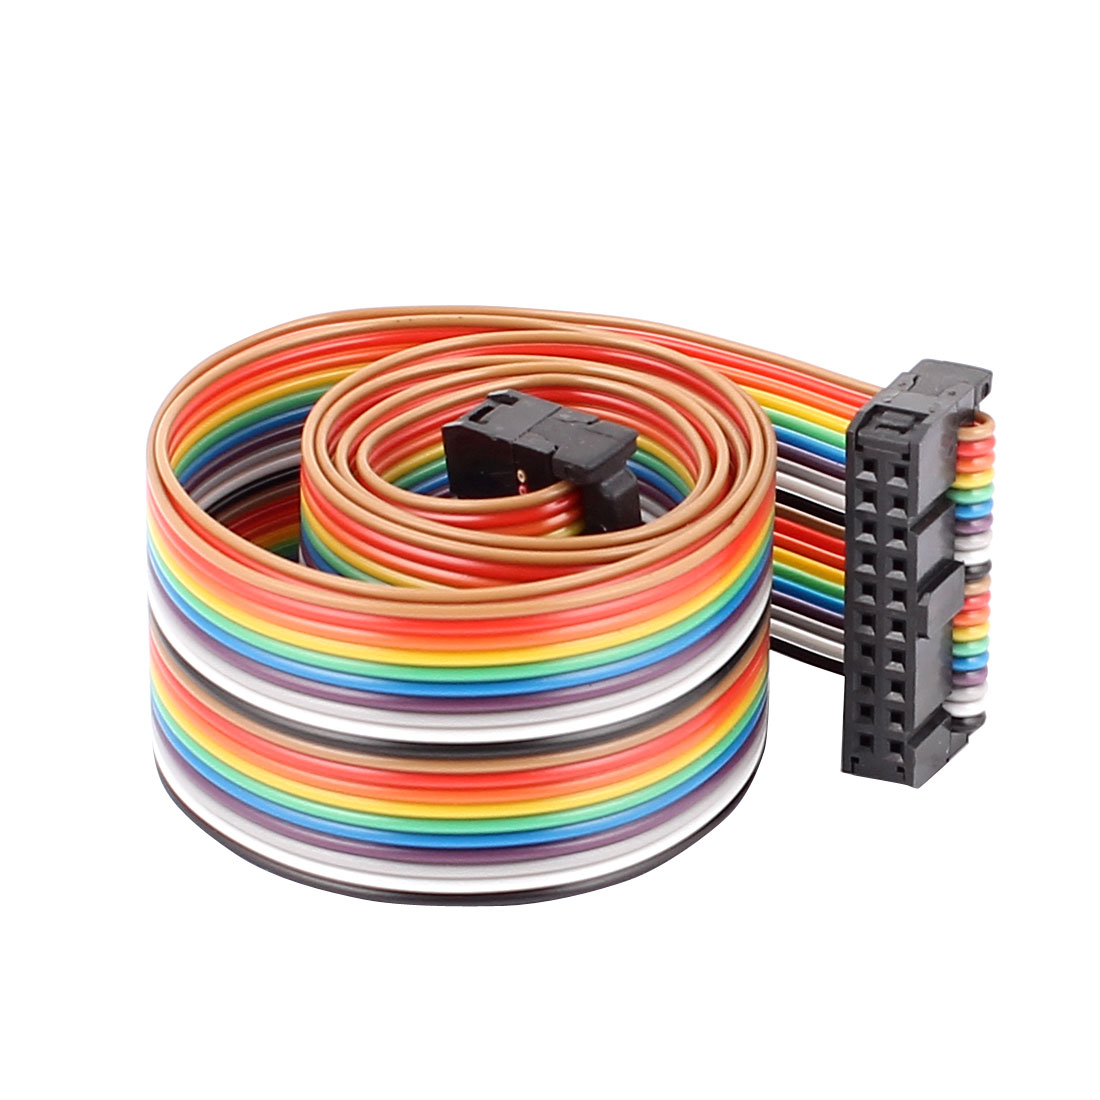 66cm Length 2.54mm Pitch 20P 20 Way F/F Rainbow IDC Flat Ribbon Cable Connector